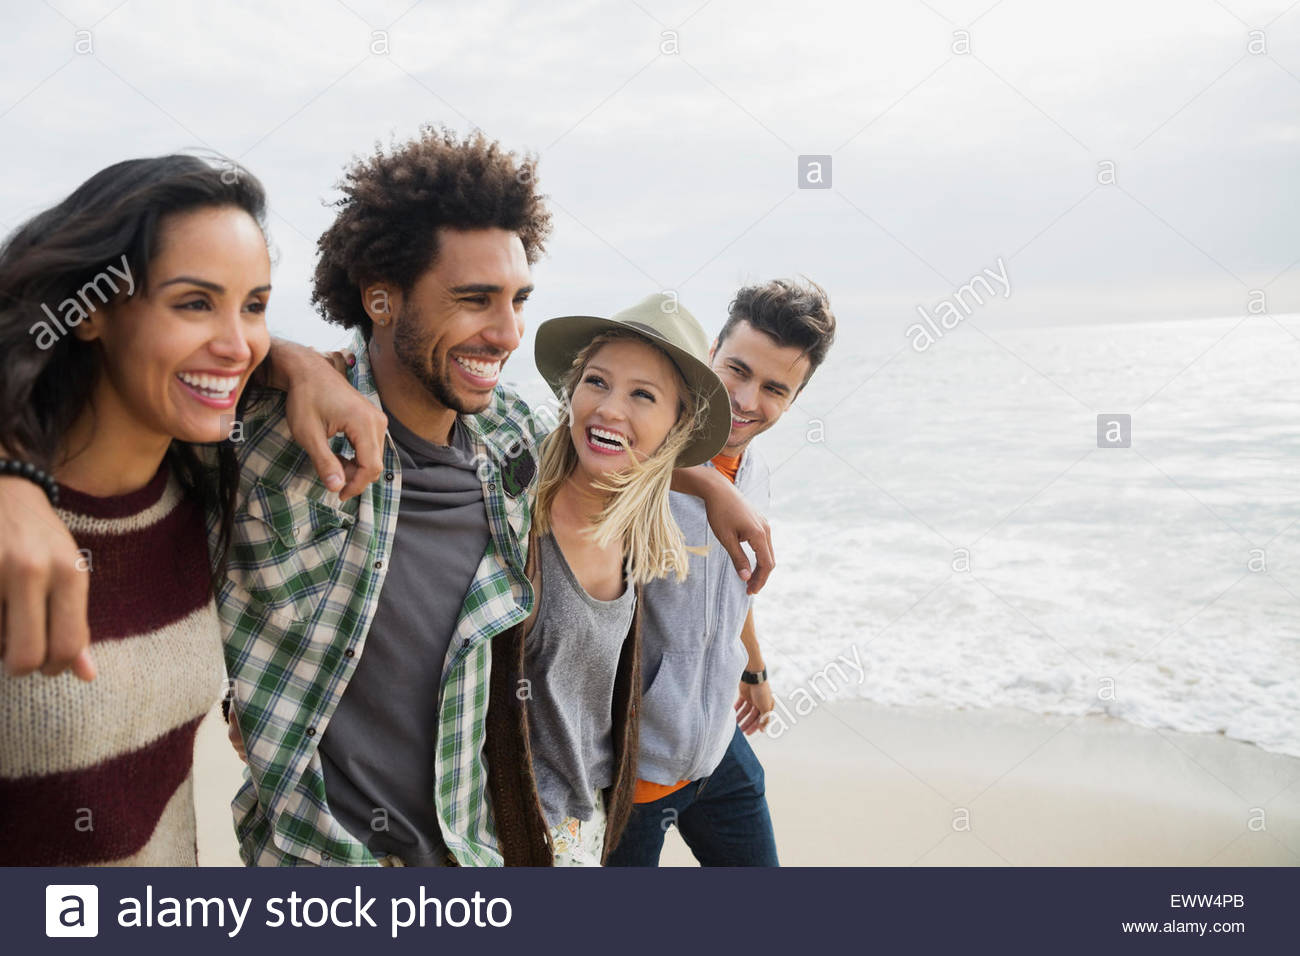 Smiling friends walking in a row on beach Photo Stock